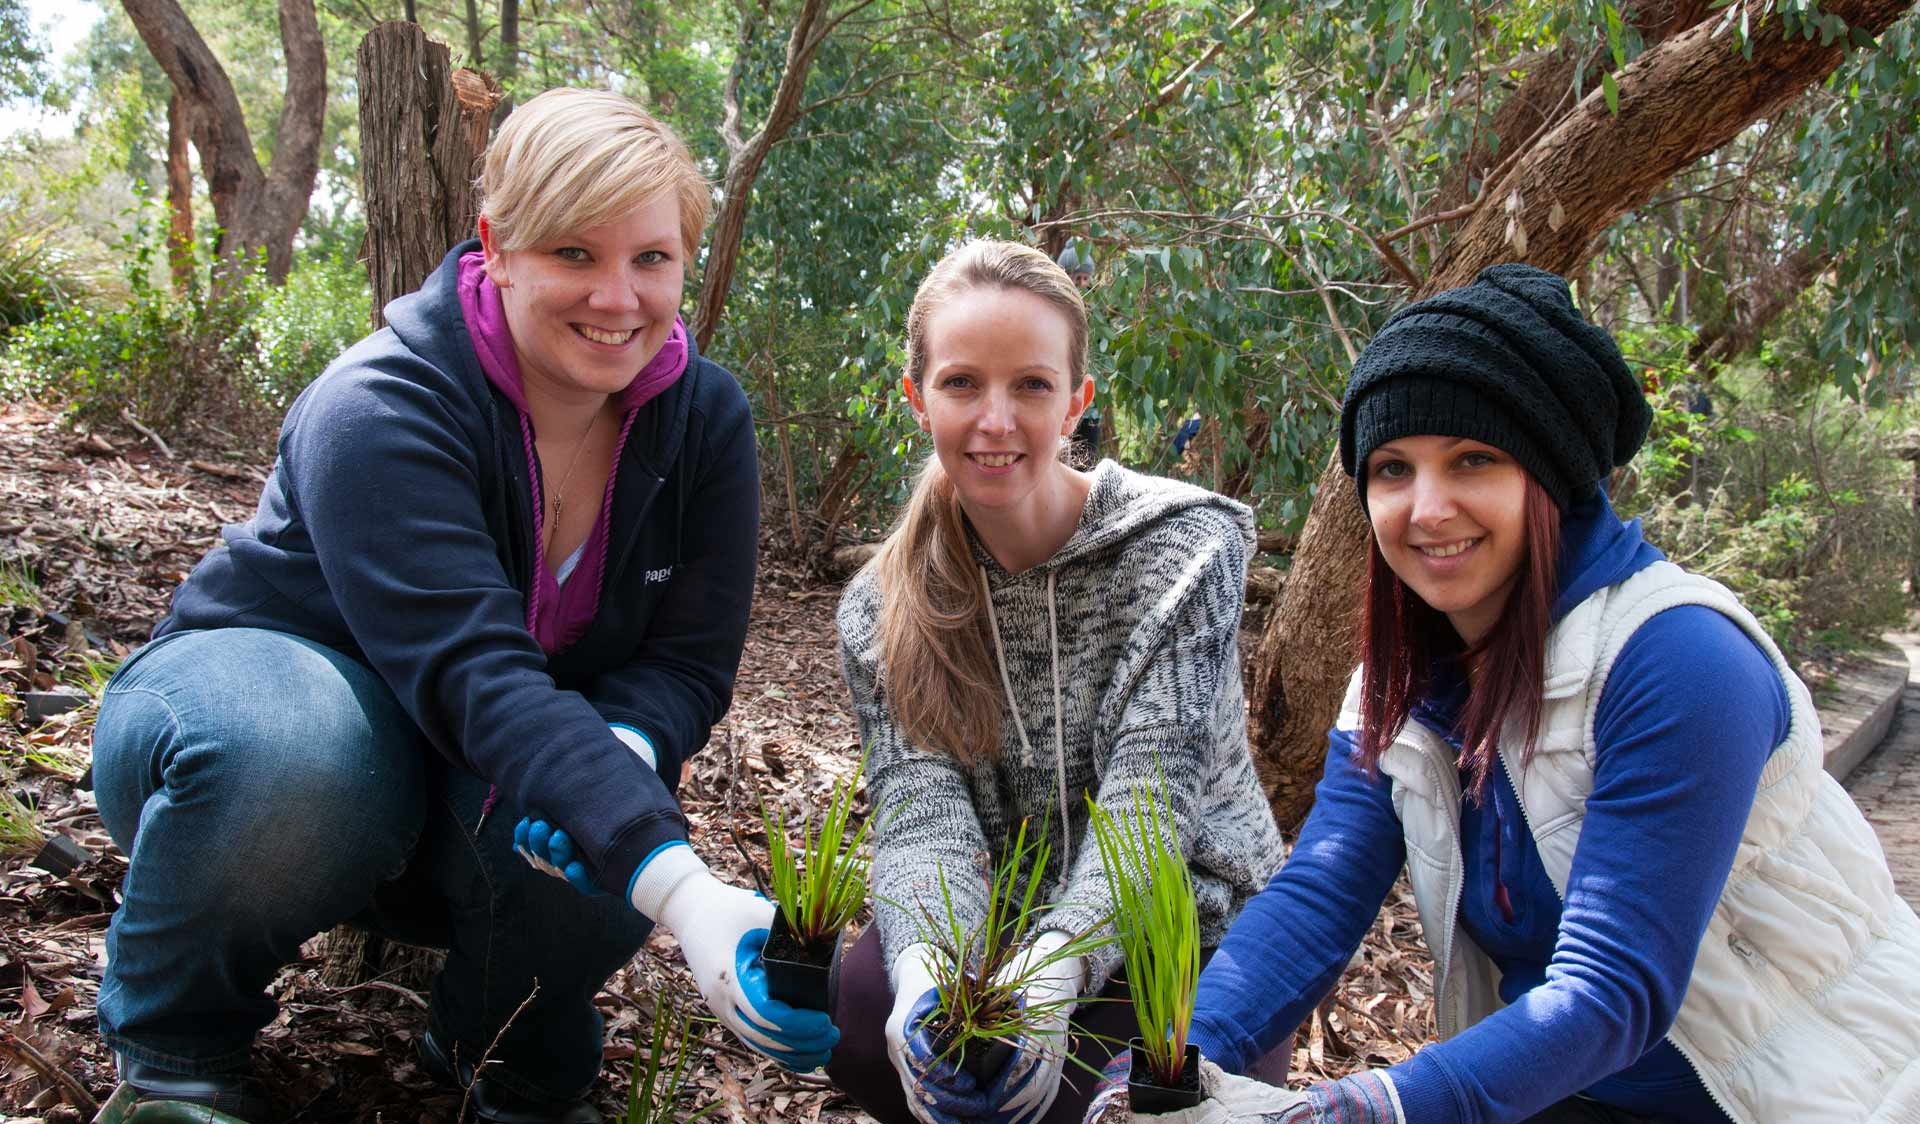 Three women in casual clothing holding seedlings